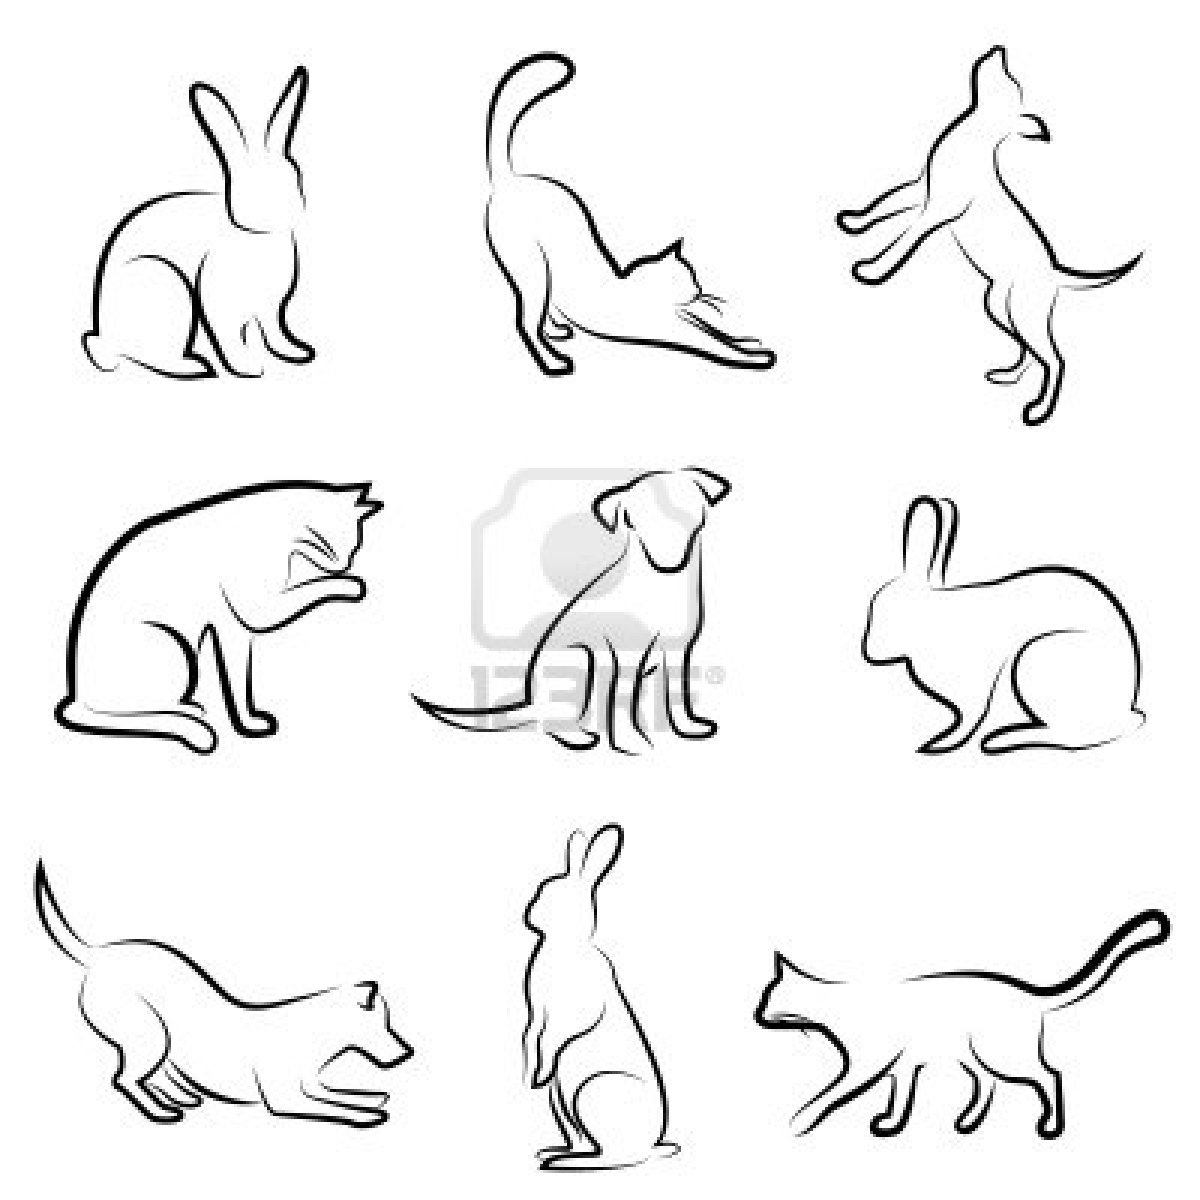 the best free pressure drawing images download from 50 free  1200x1200 good studies in line pressure as well as negative space bunnies